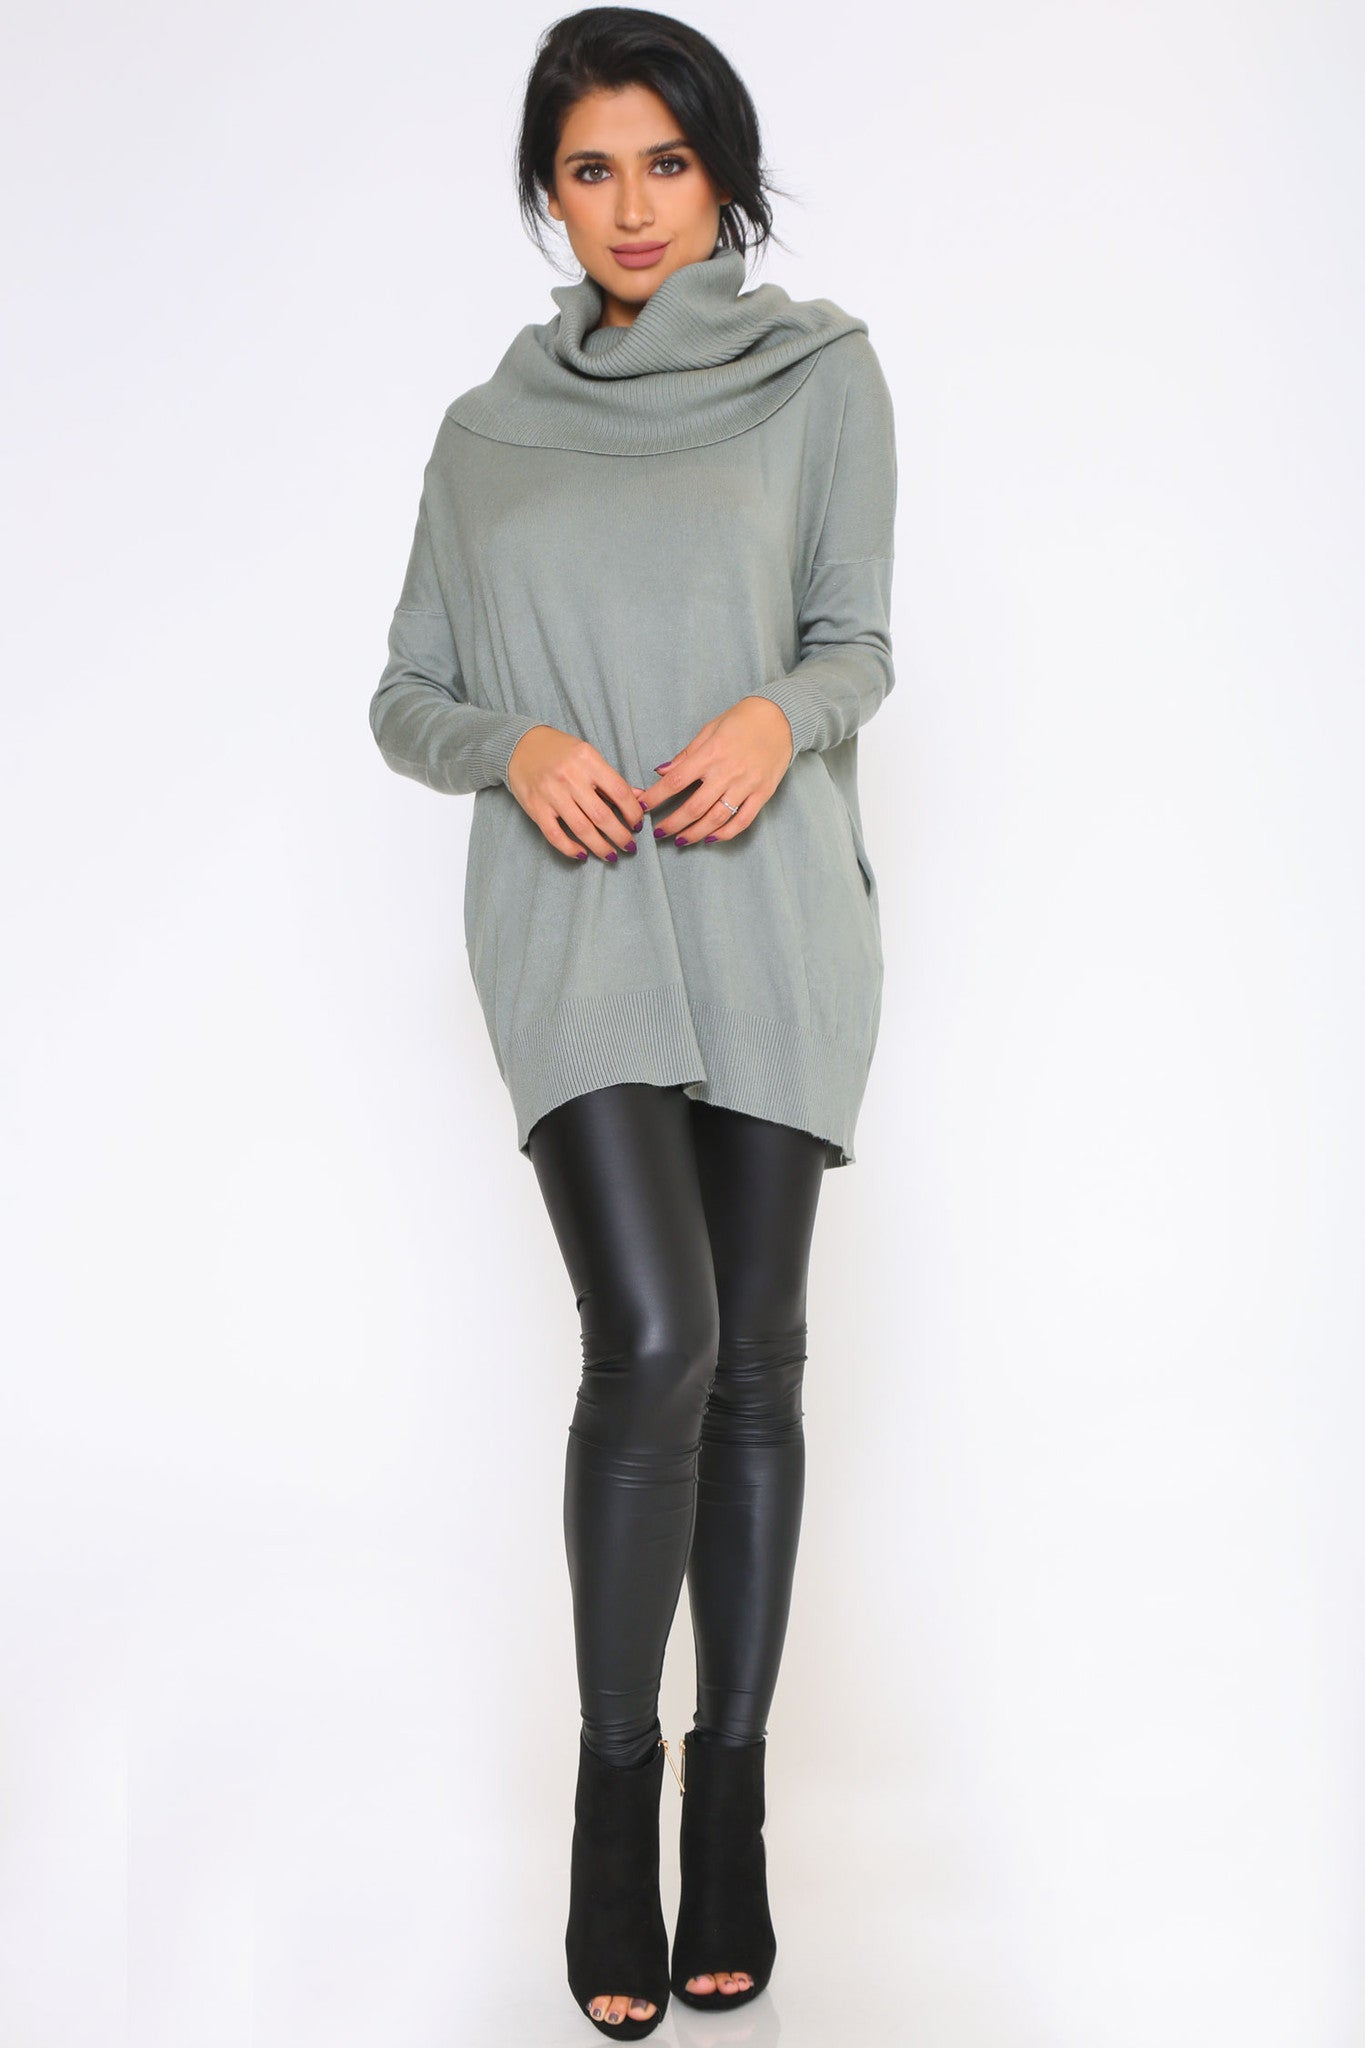 KENDRA SWEATER DRESS - Glam Envy - 1